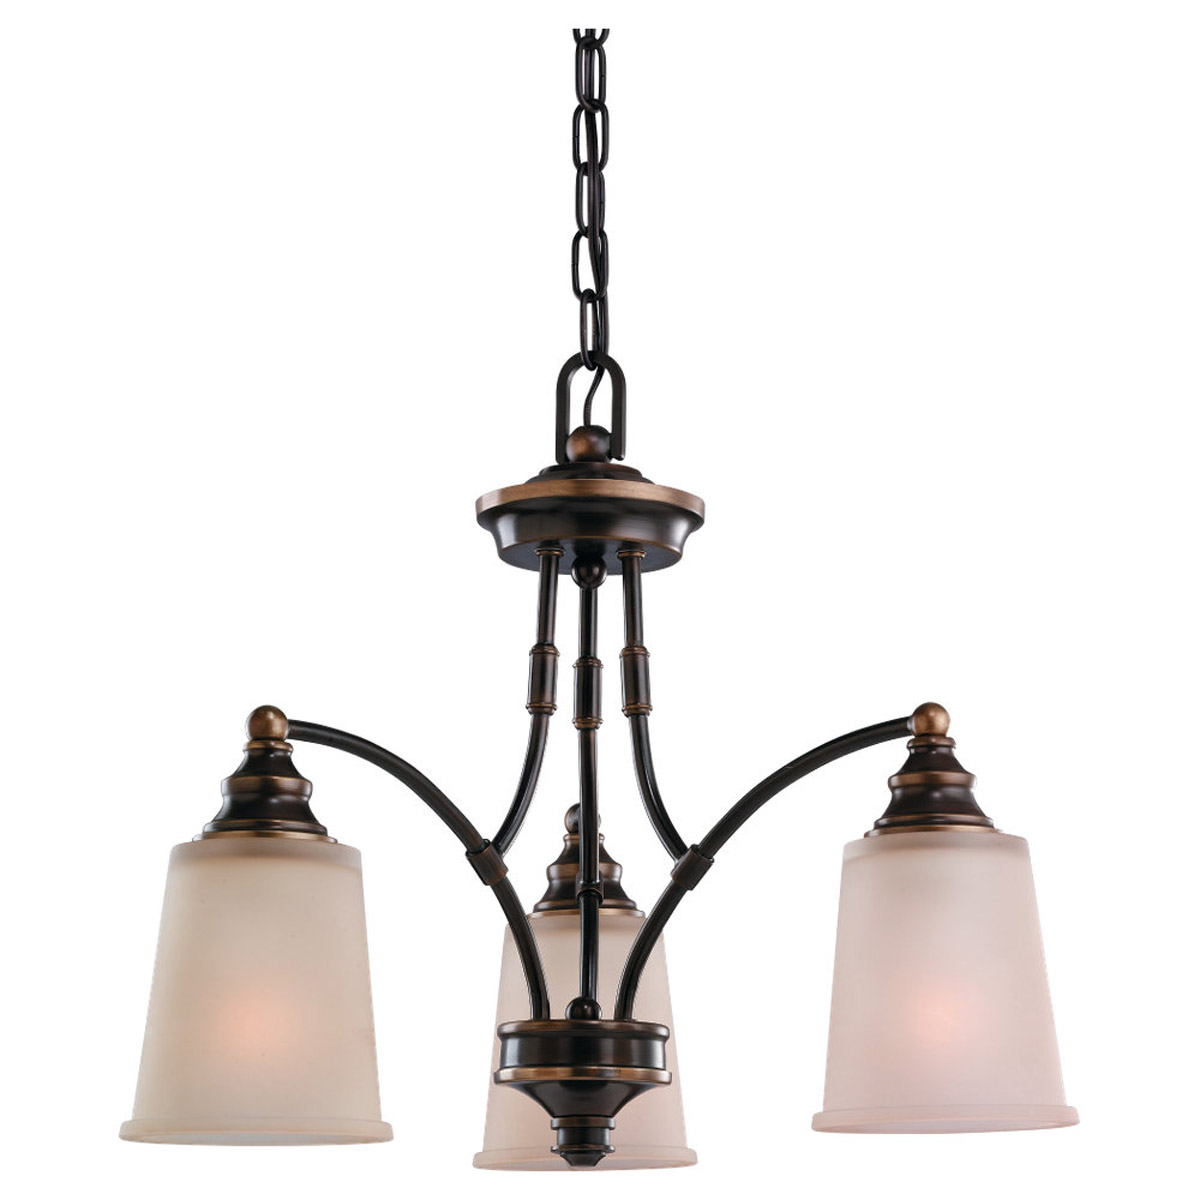 Sea Gull Lighting Warwick 3 Light Chandelier in Vintage Bronze 31330-825 photo